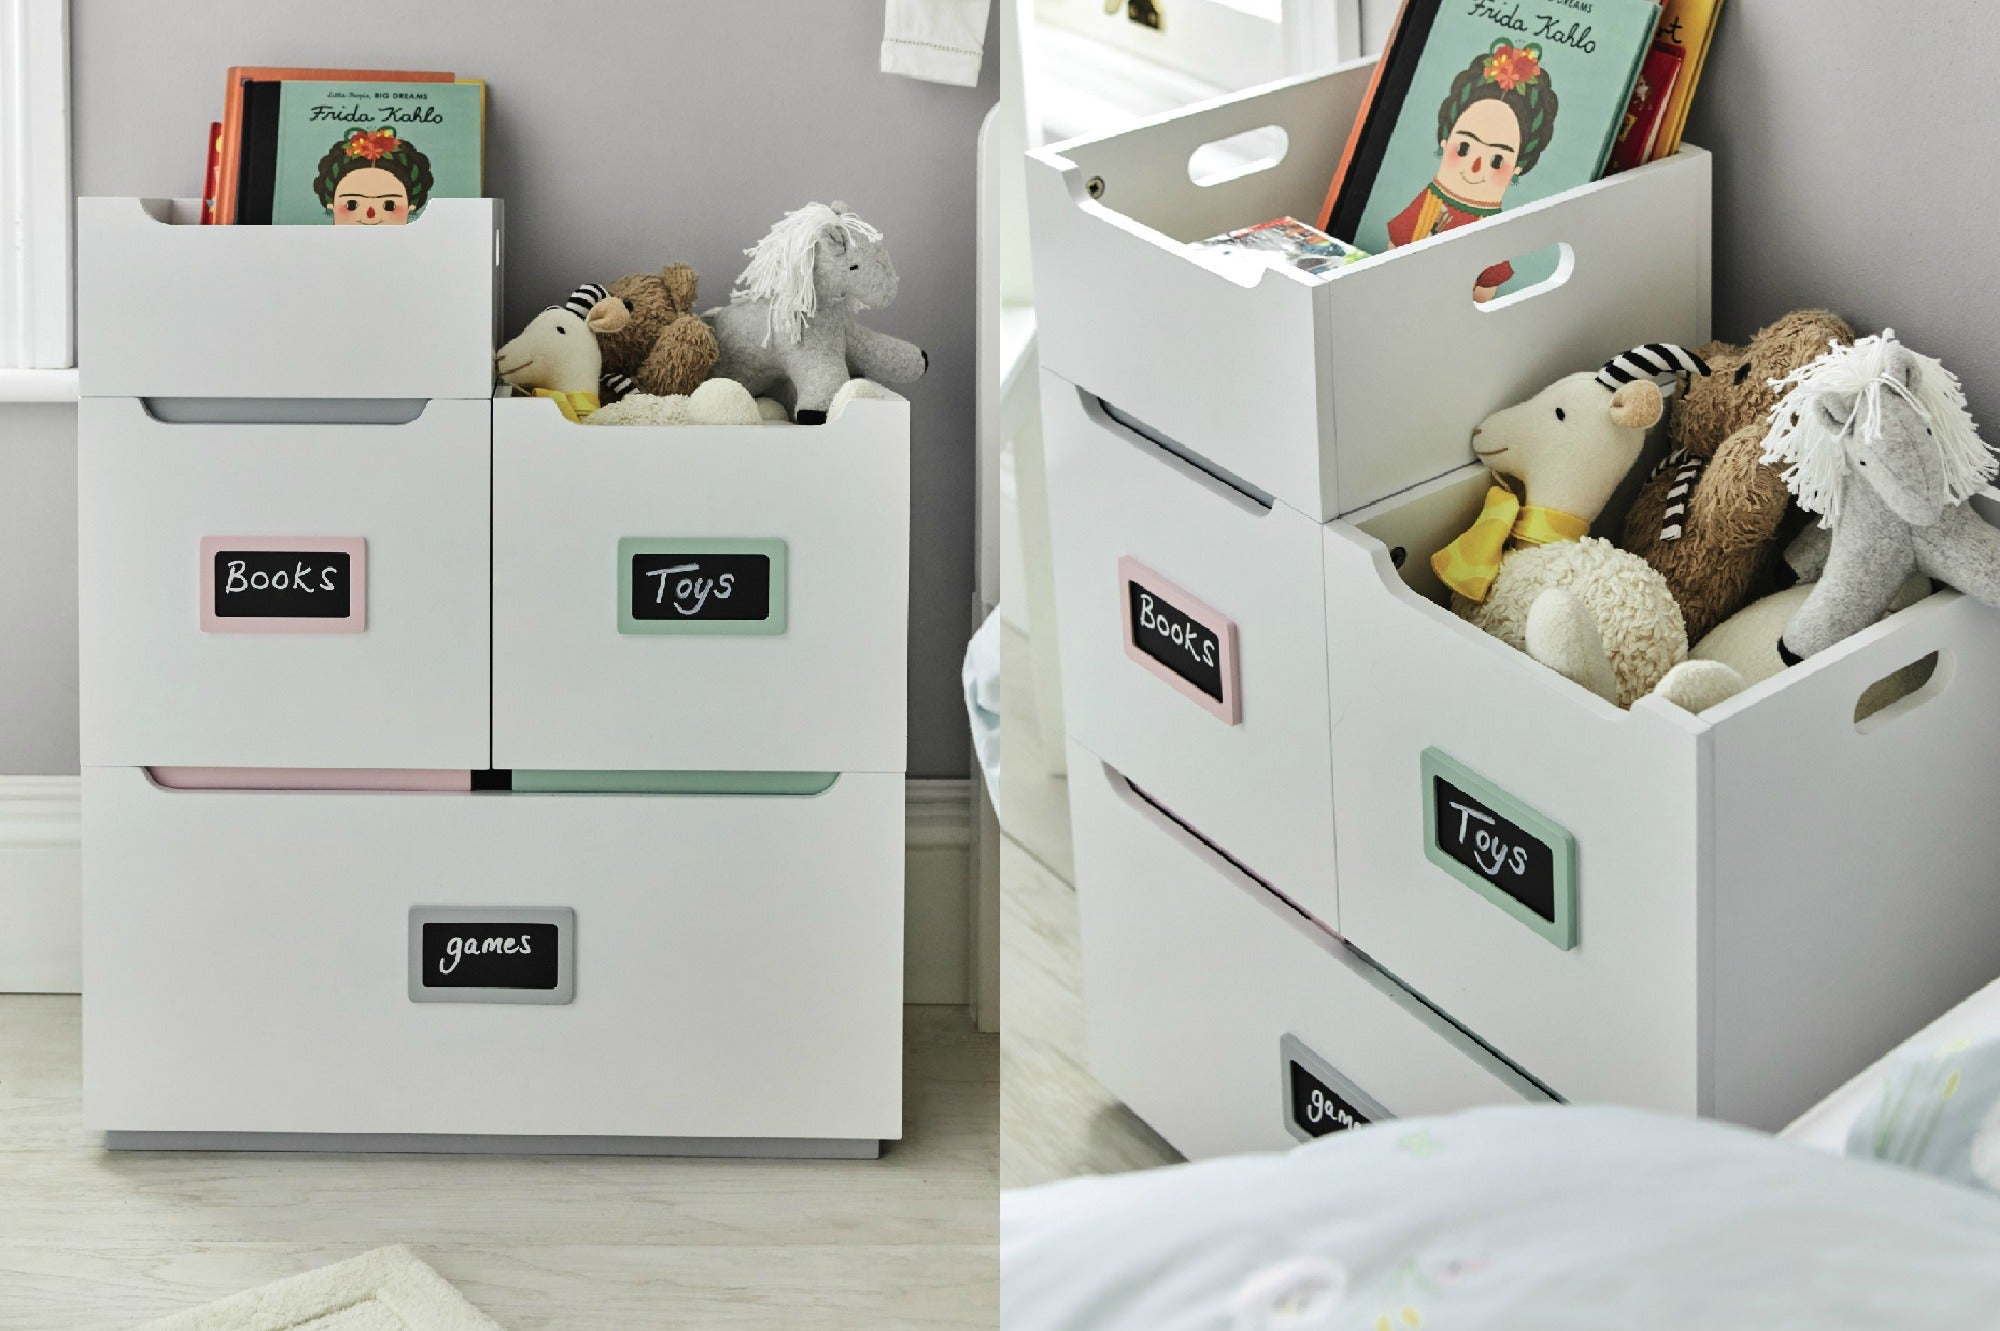 Storage solutions: Goodbye Mess, Farewell Clutter!